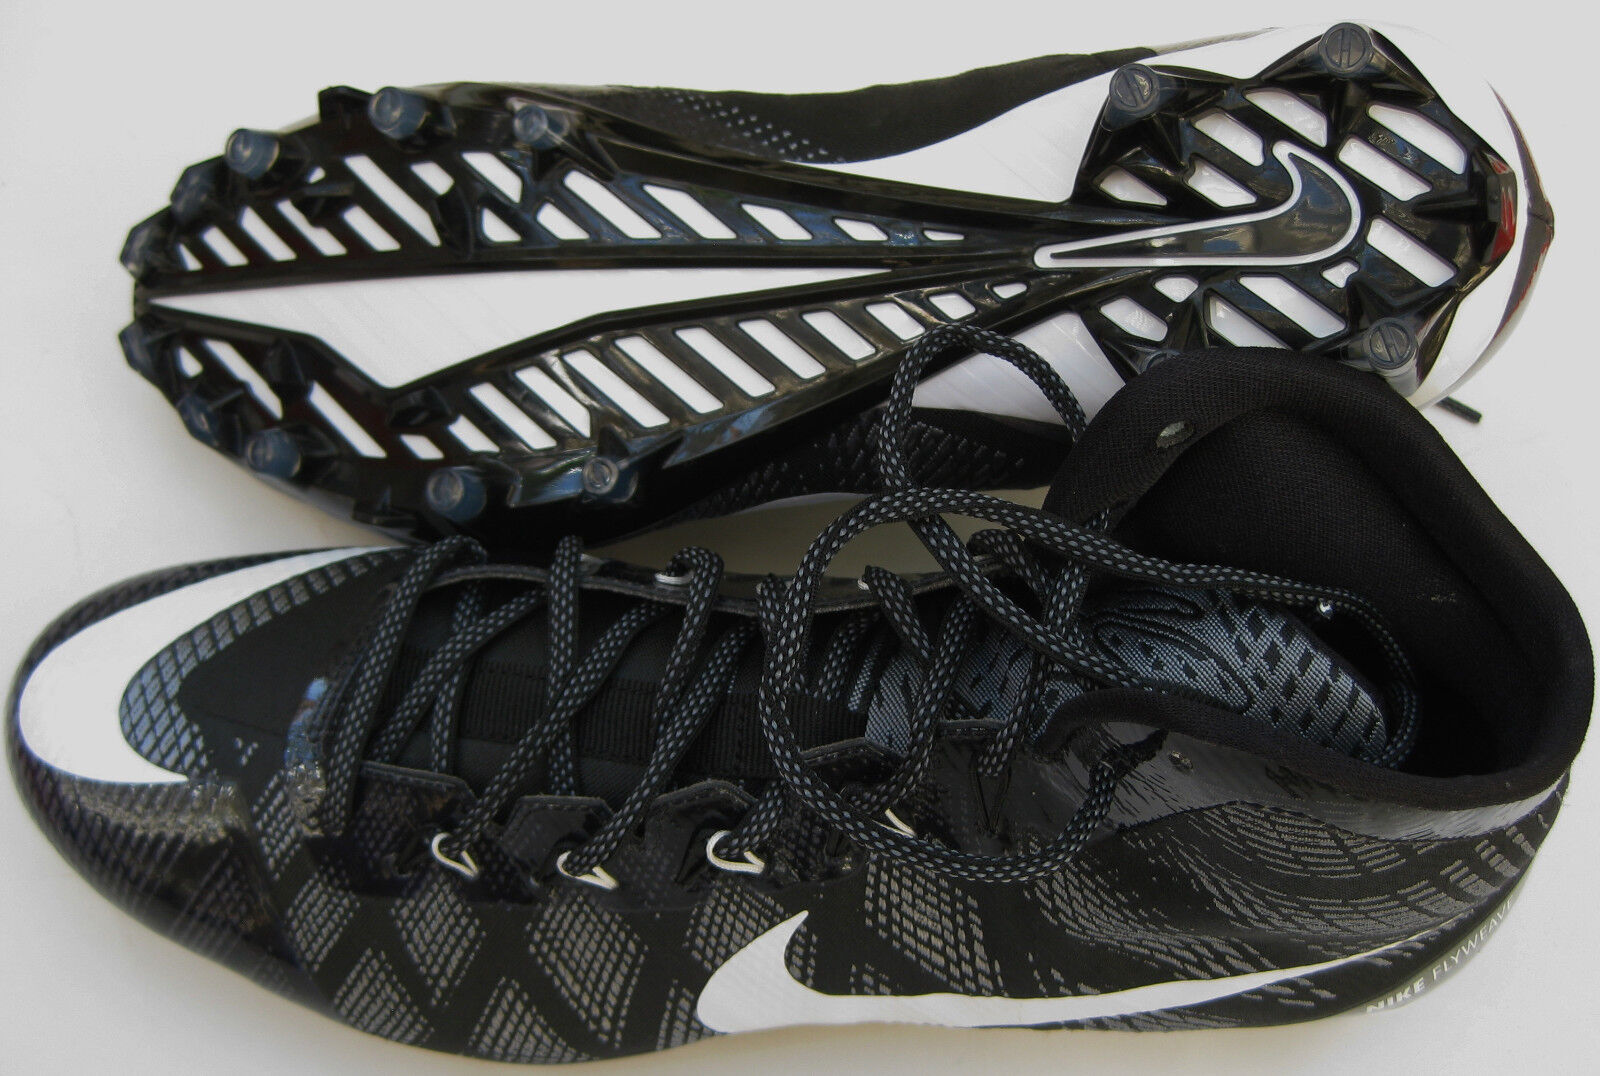 new style 4237a 05fcf ... Nike Men s CJ3 Flyweave Elite Elite Elite TD Football Cleats 725226 Sz  8.5 10.5- ...